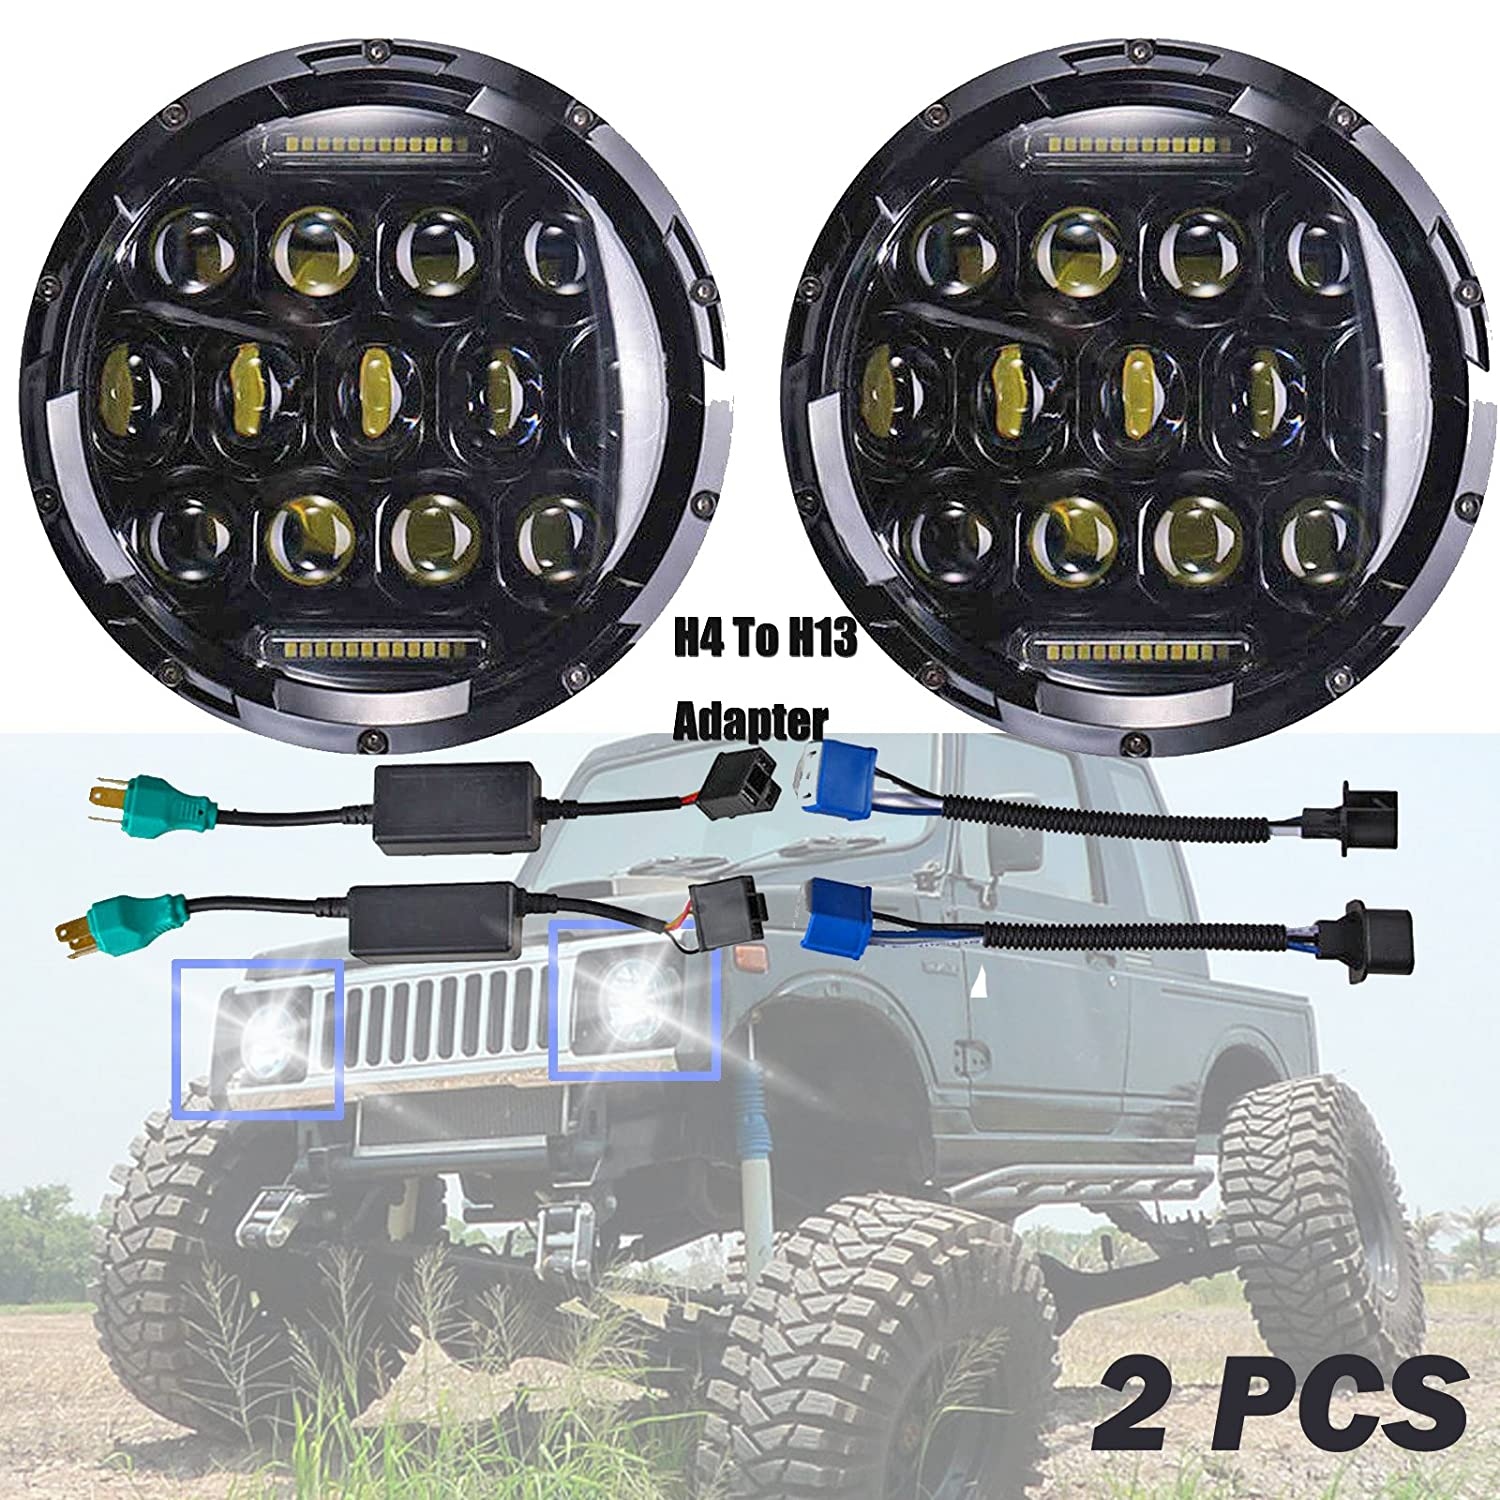 H6024 H4 H13 Led Headlights For Suzuki Samurai Sj410 7 Drl Fuse Box 2003 Peterbilt Inch Round High Low Sealed Beam Projector Lens 6000k Headlamp Fog Light Replacement